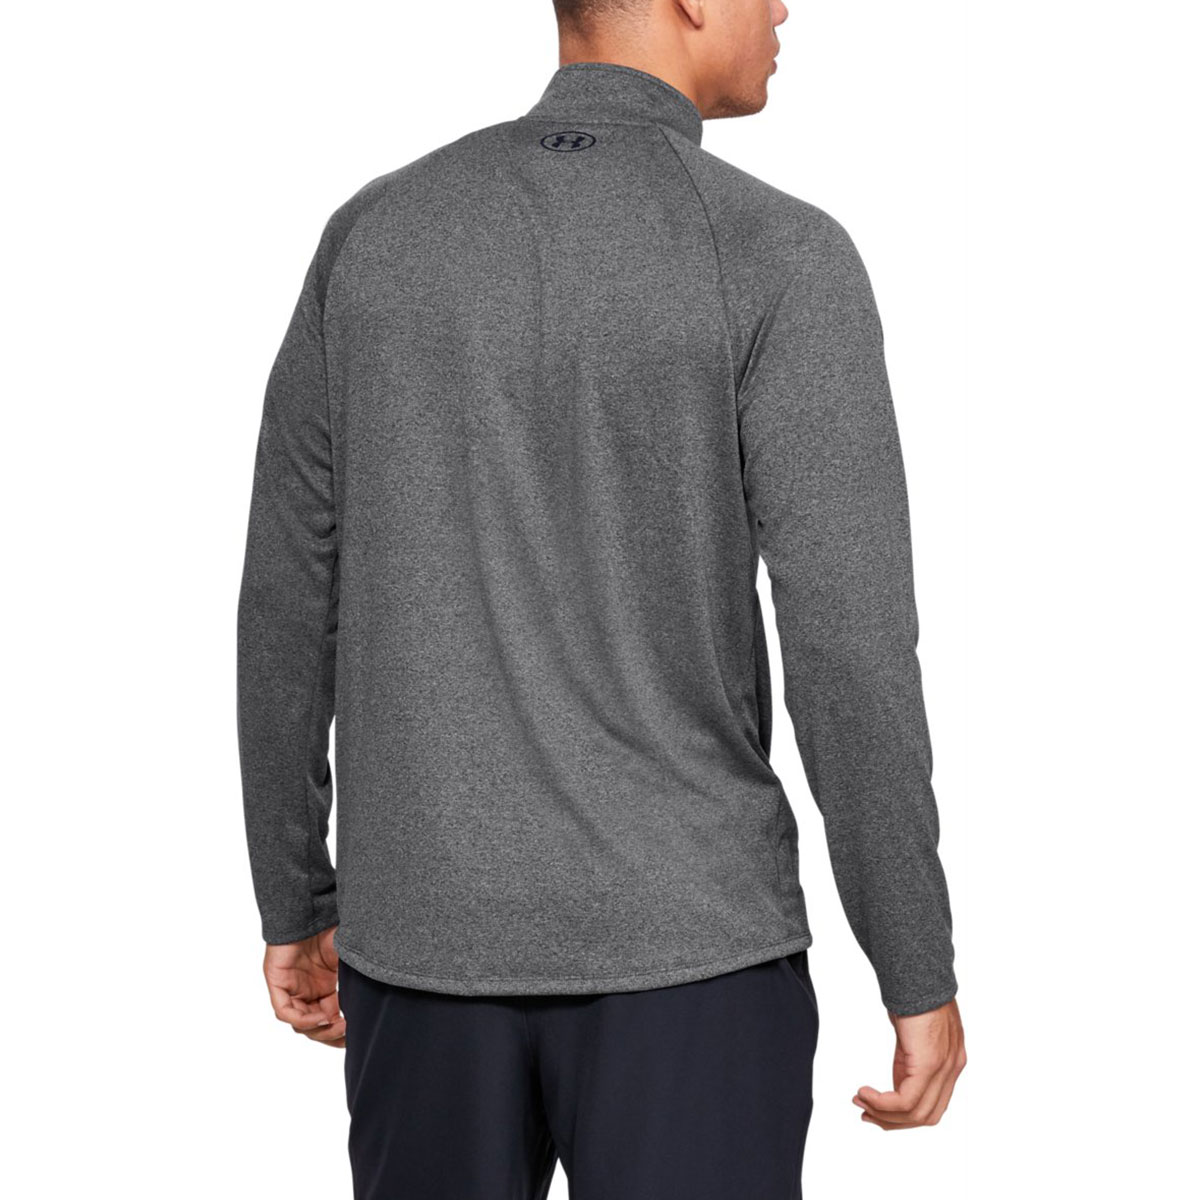 Under-Armour-Mens-2019-UA-Tech-2-0-1-2-Zip-HeatGear-Training-Breathable-Sweater thumbnail 23